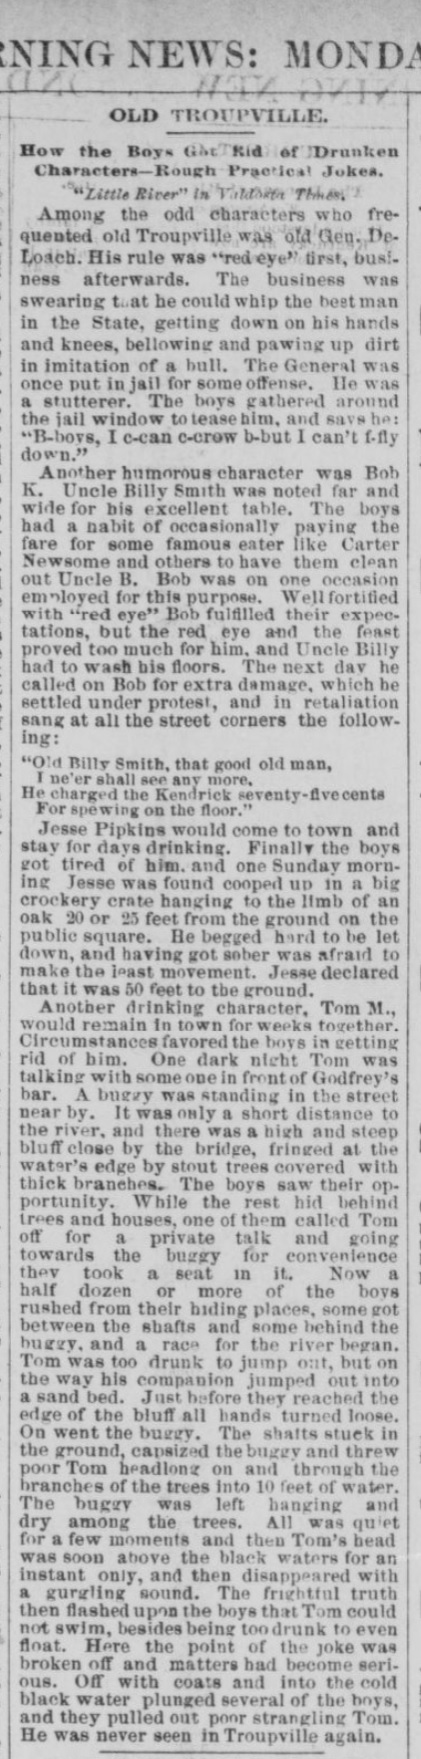 Tales of Old Troupville, GA in the Savannah Morning News, May 5, 1885